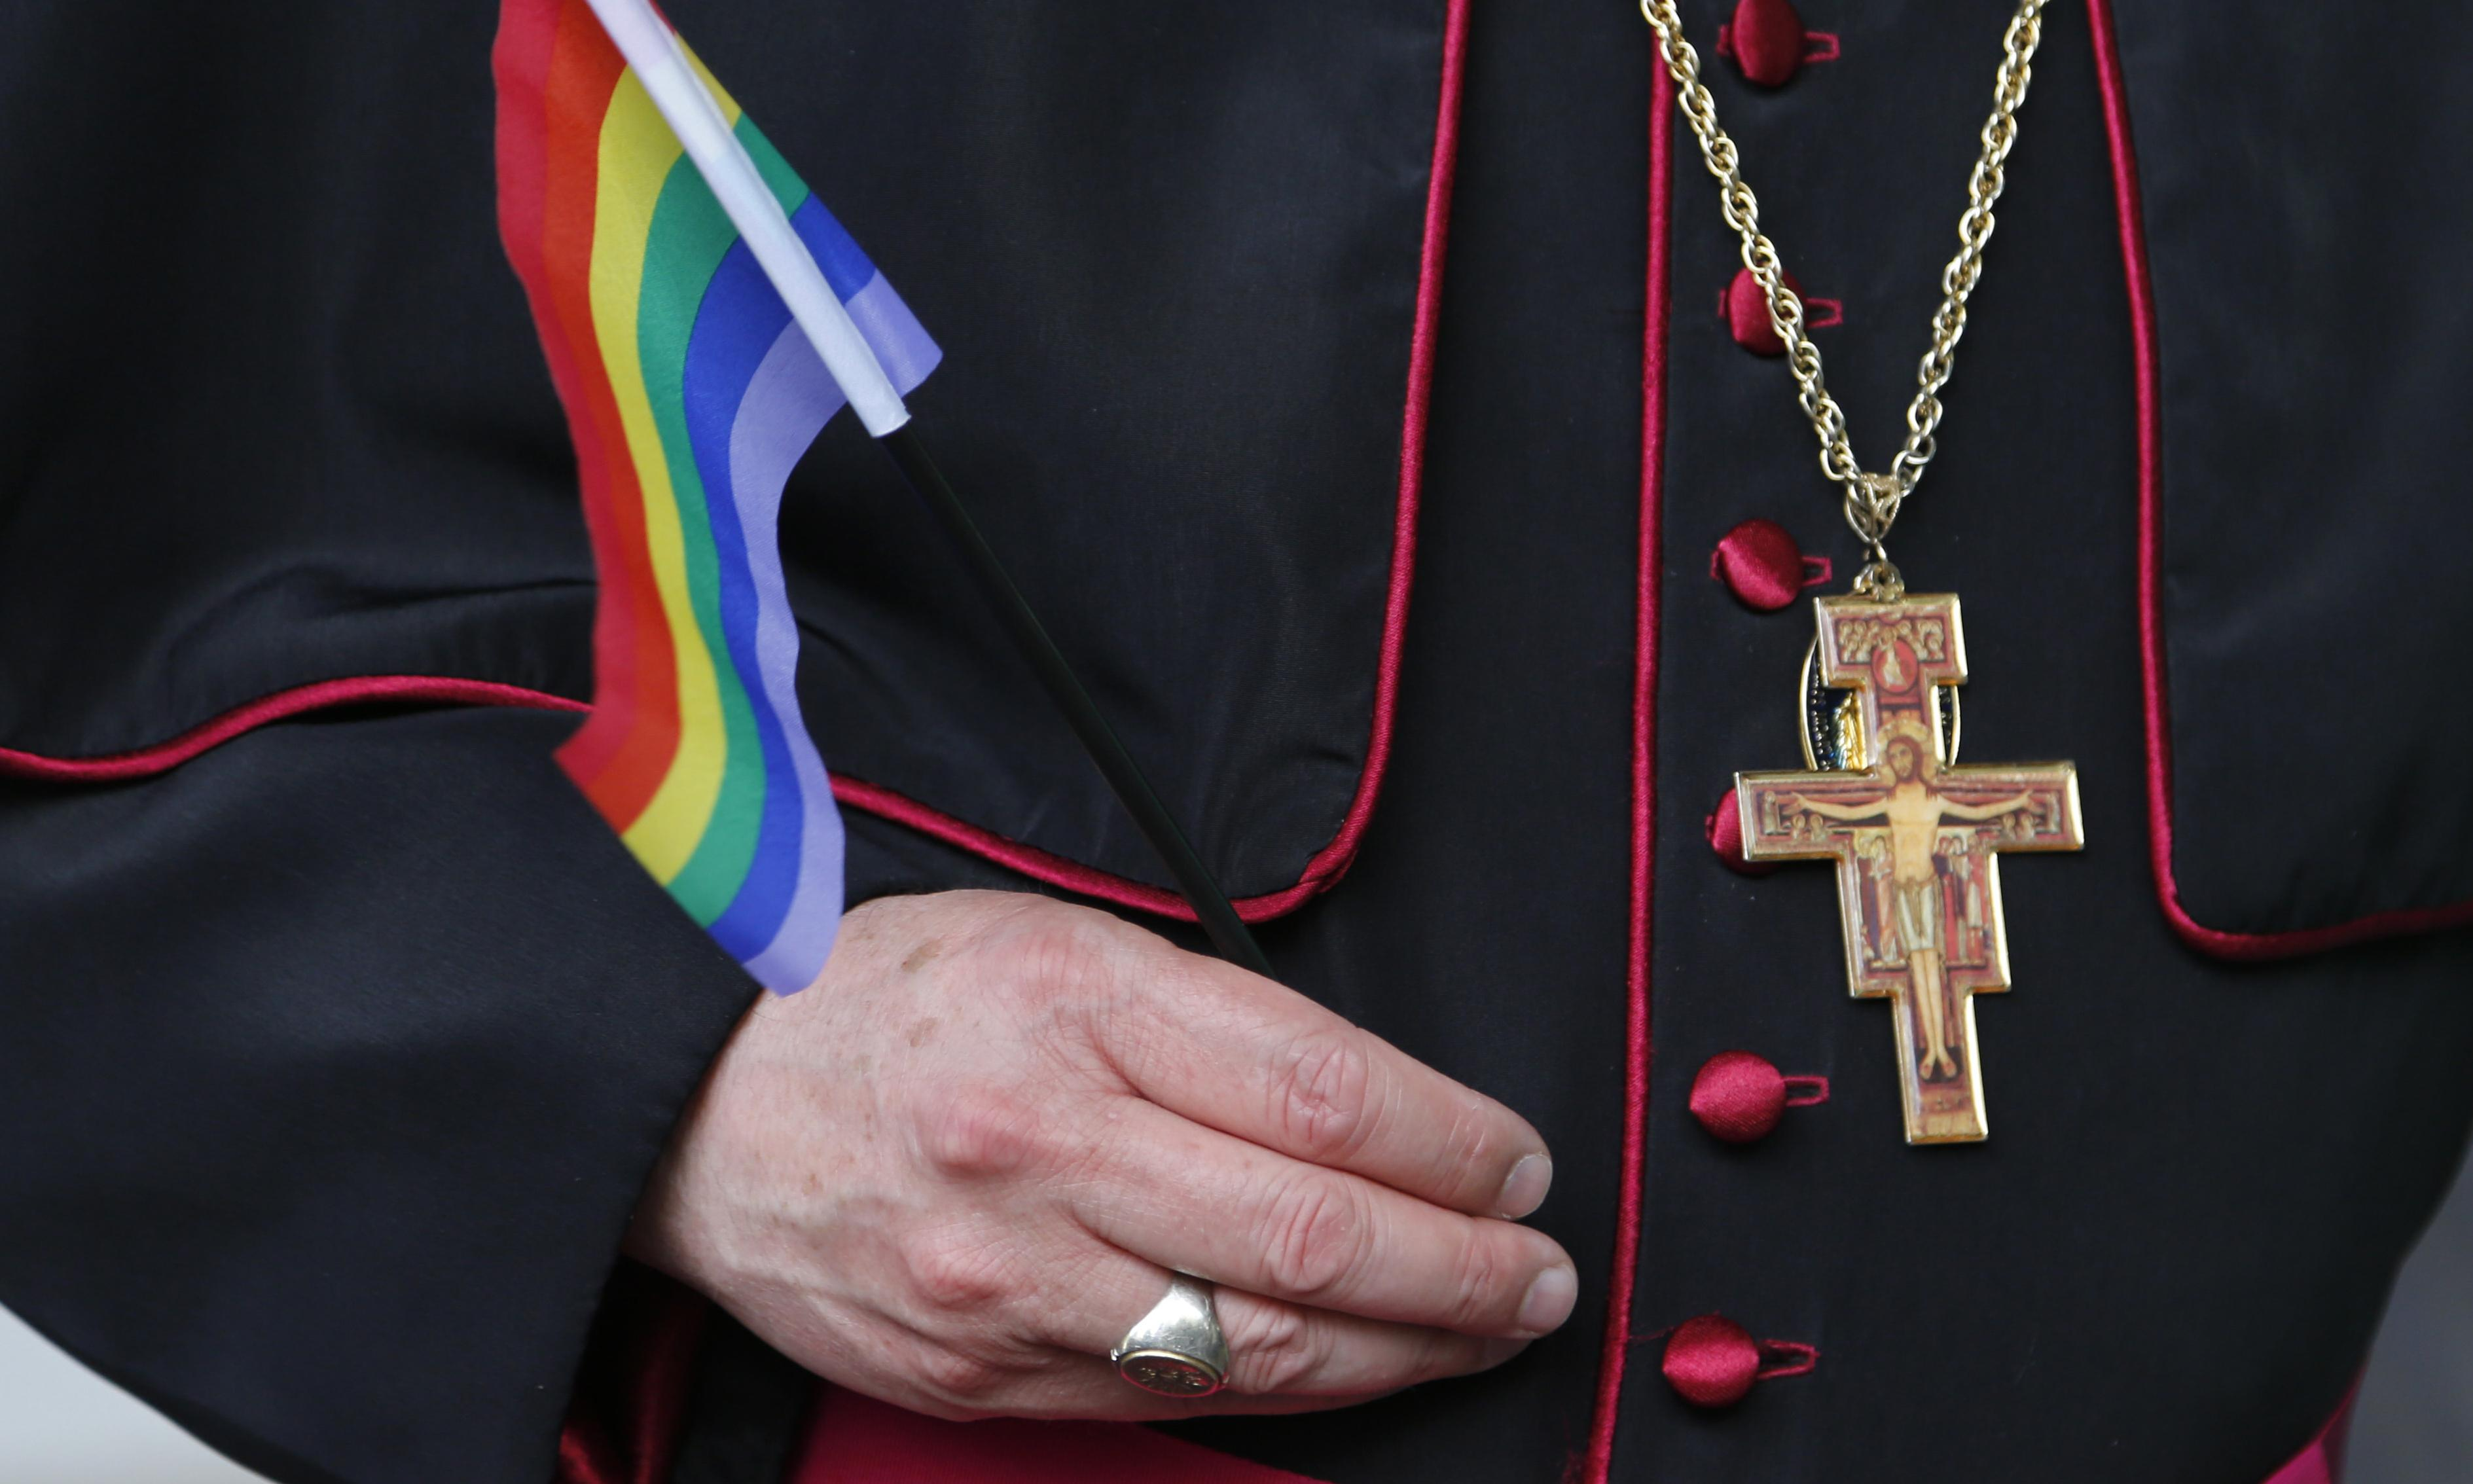 Being a gay Christian can be hurtful and gruelling. But I refuse to lose faith